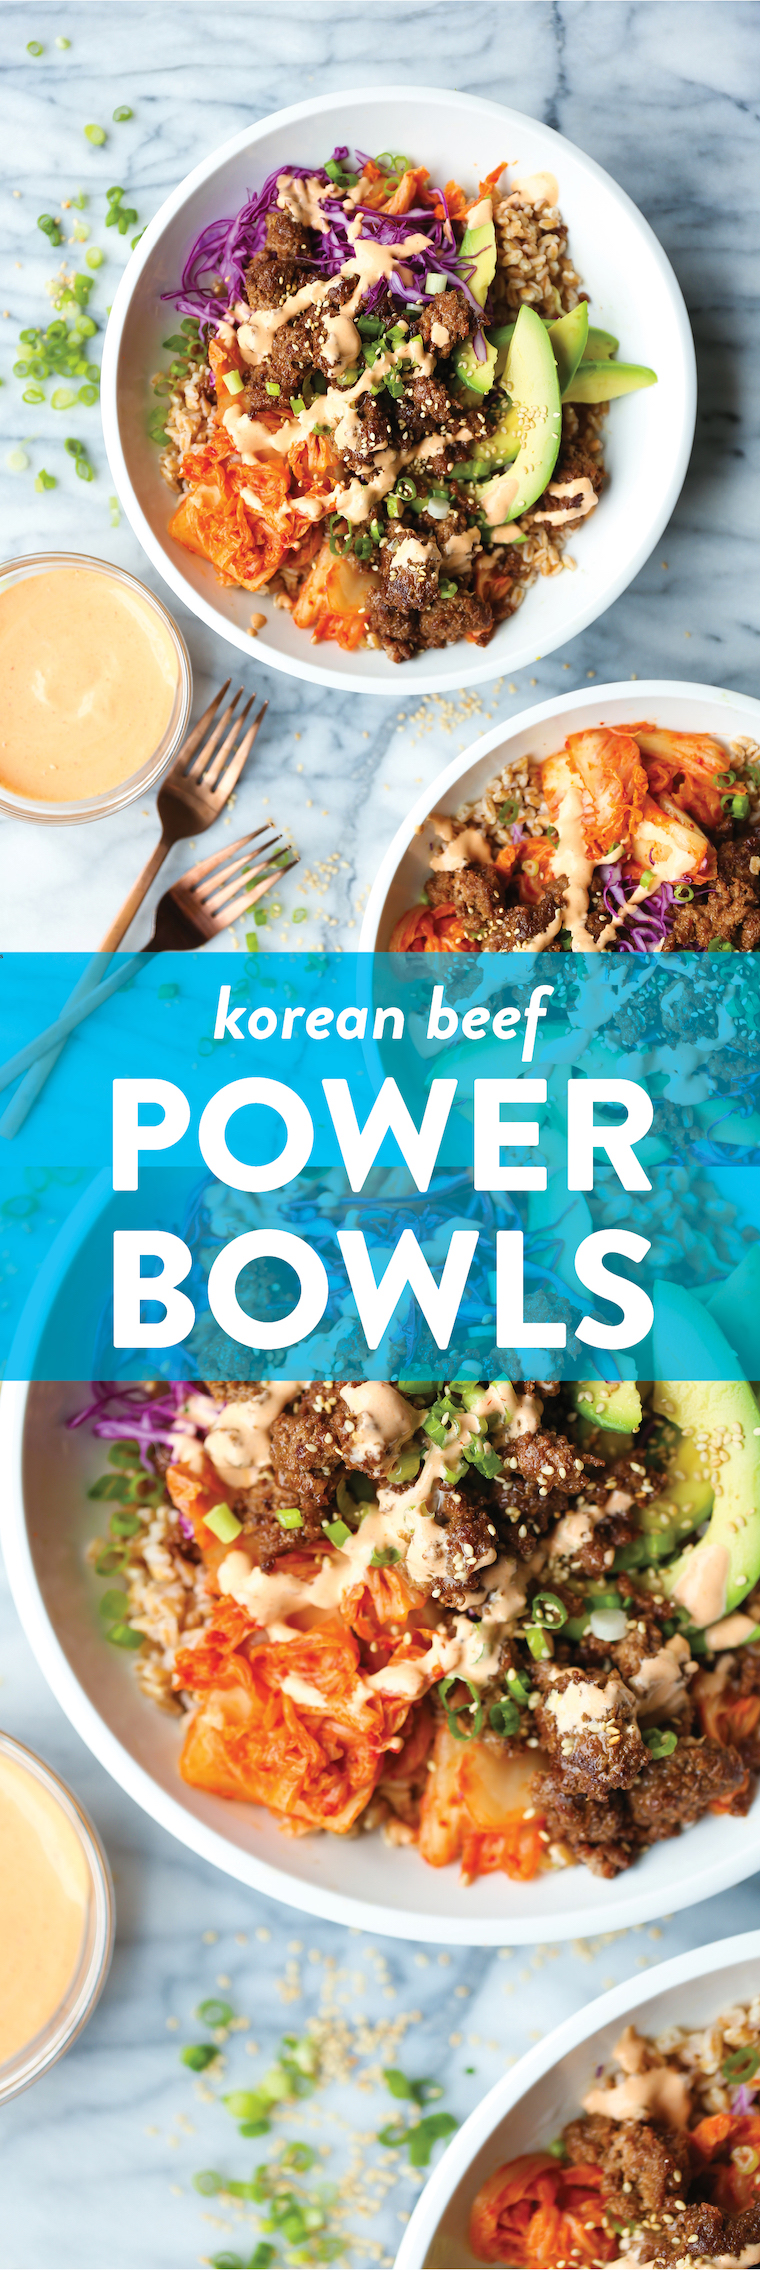 Korean Beef Power Bowls - With the easiest Korean beef, shredded cabbage, caramelized kimchi, avocado slices, and the best ever Sriracha mayo. SO SO BOMB.